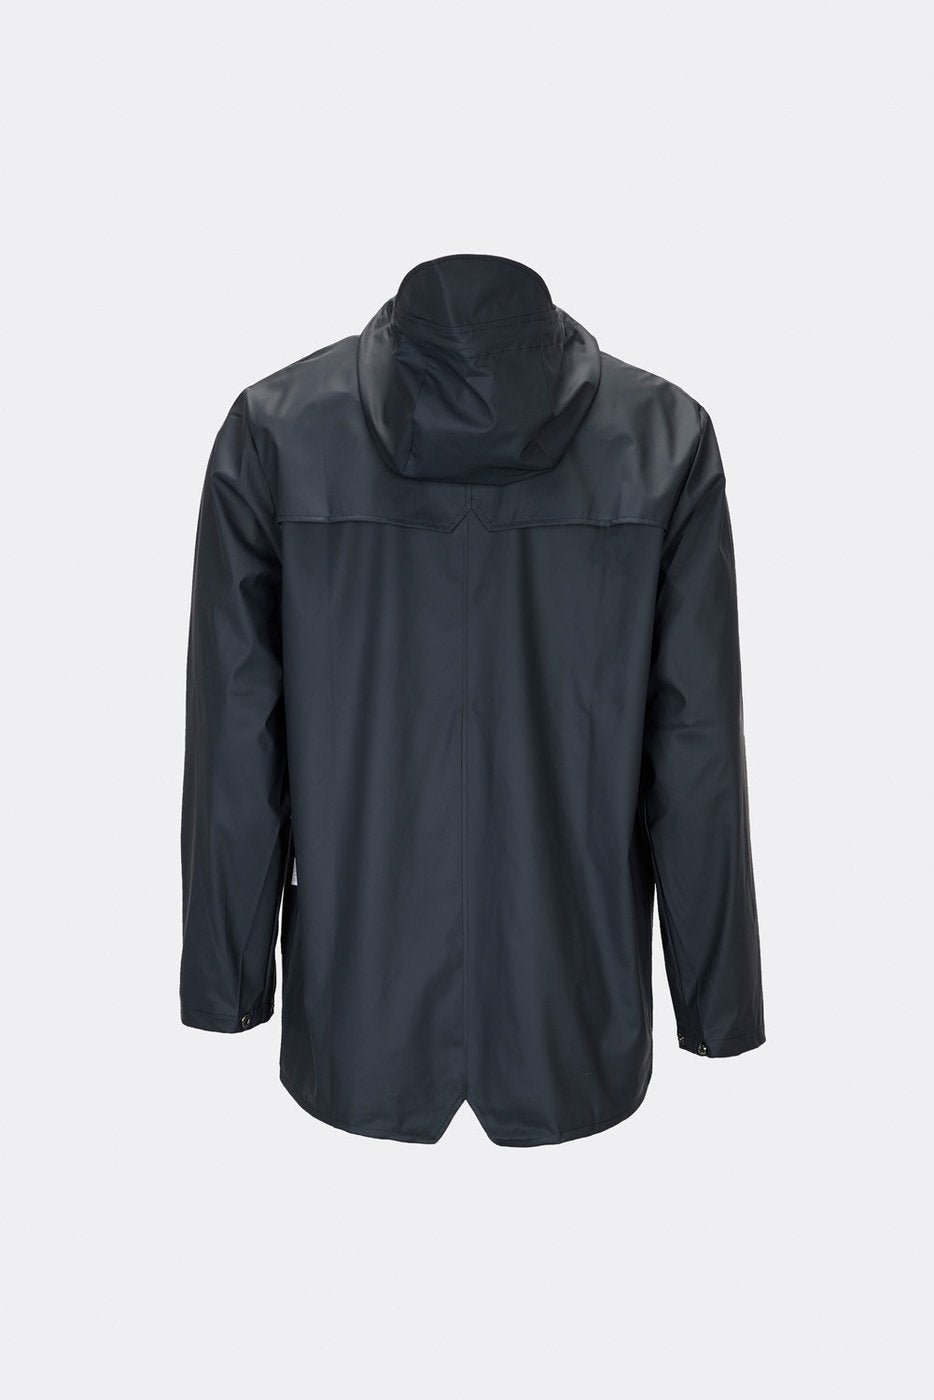 Rains - Jacket Blue